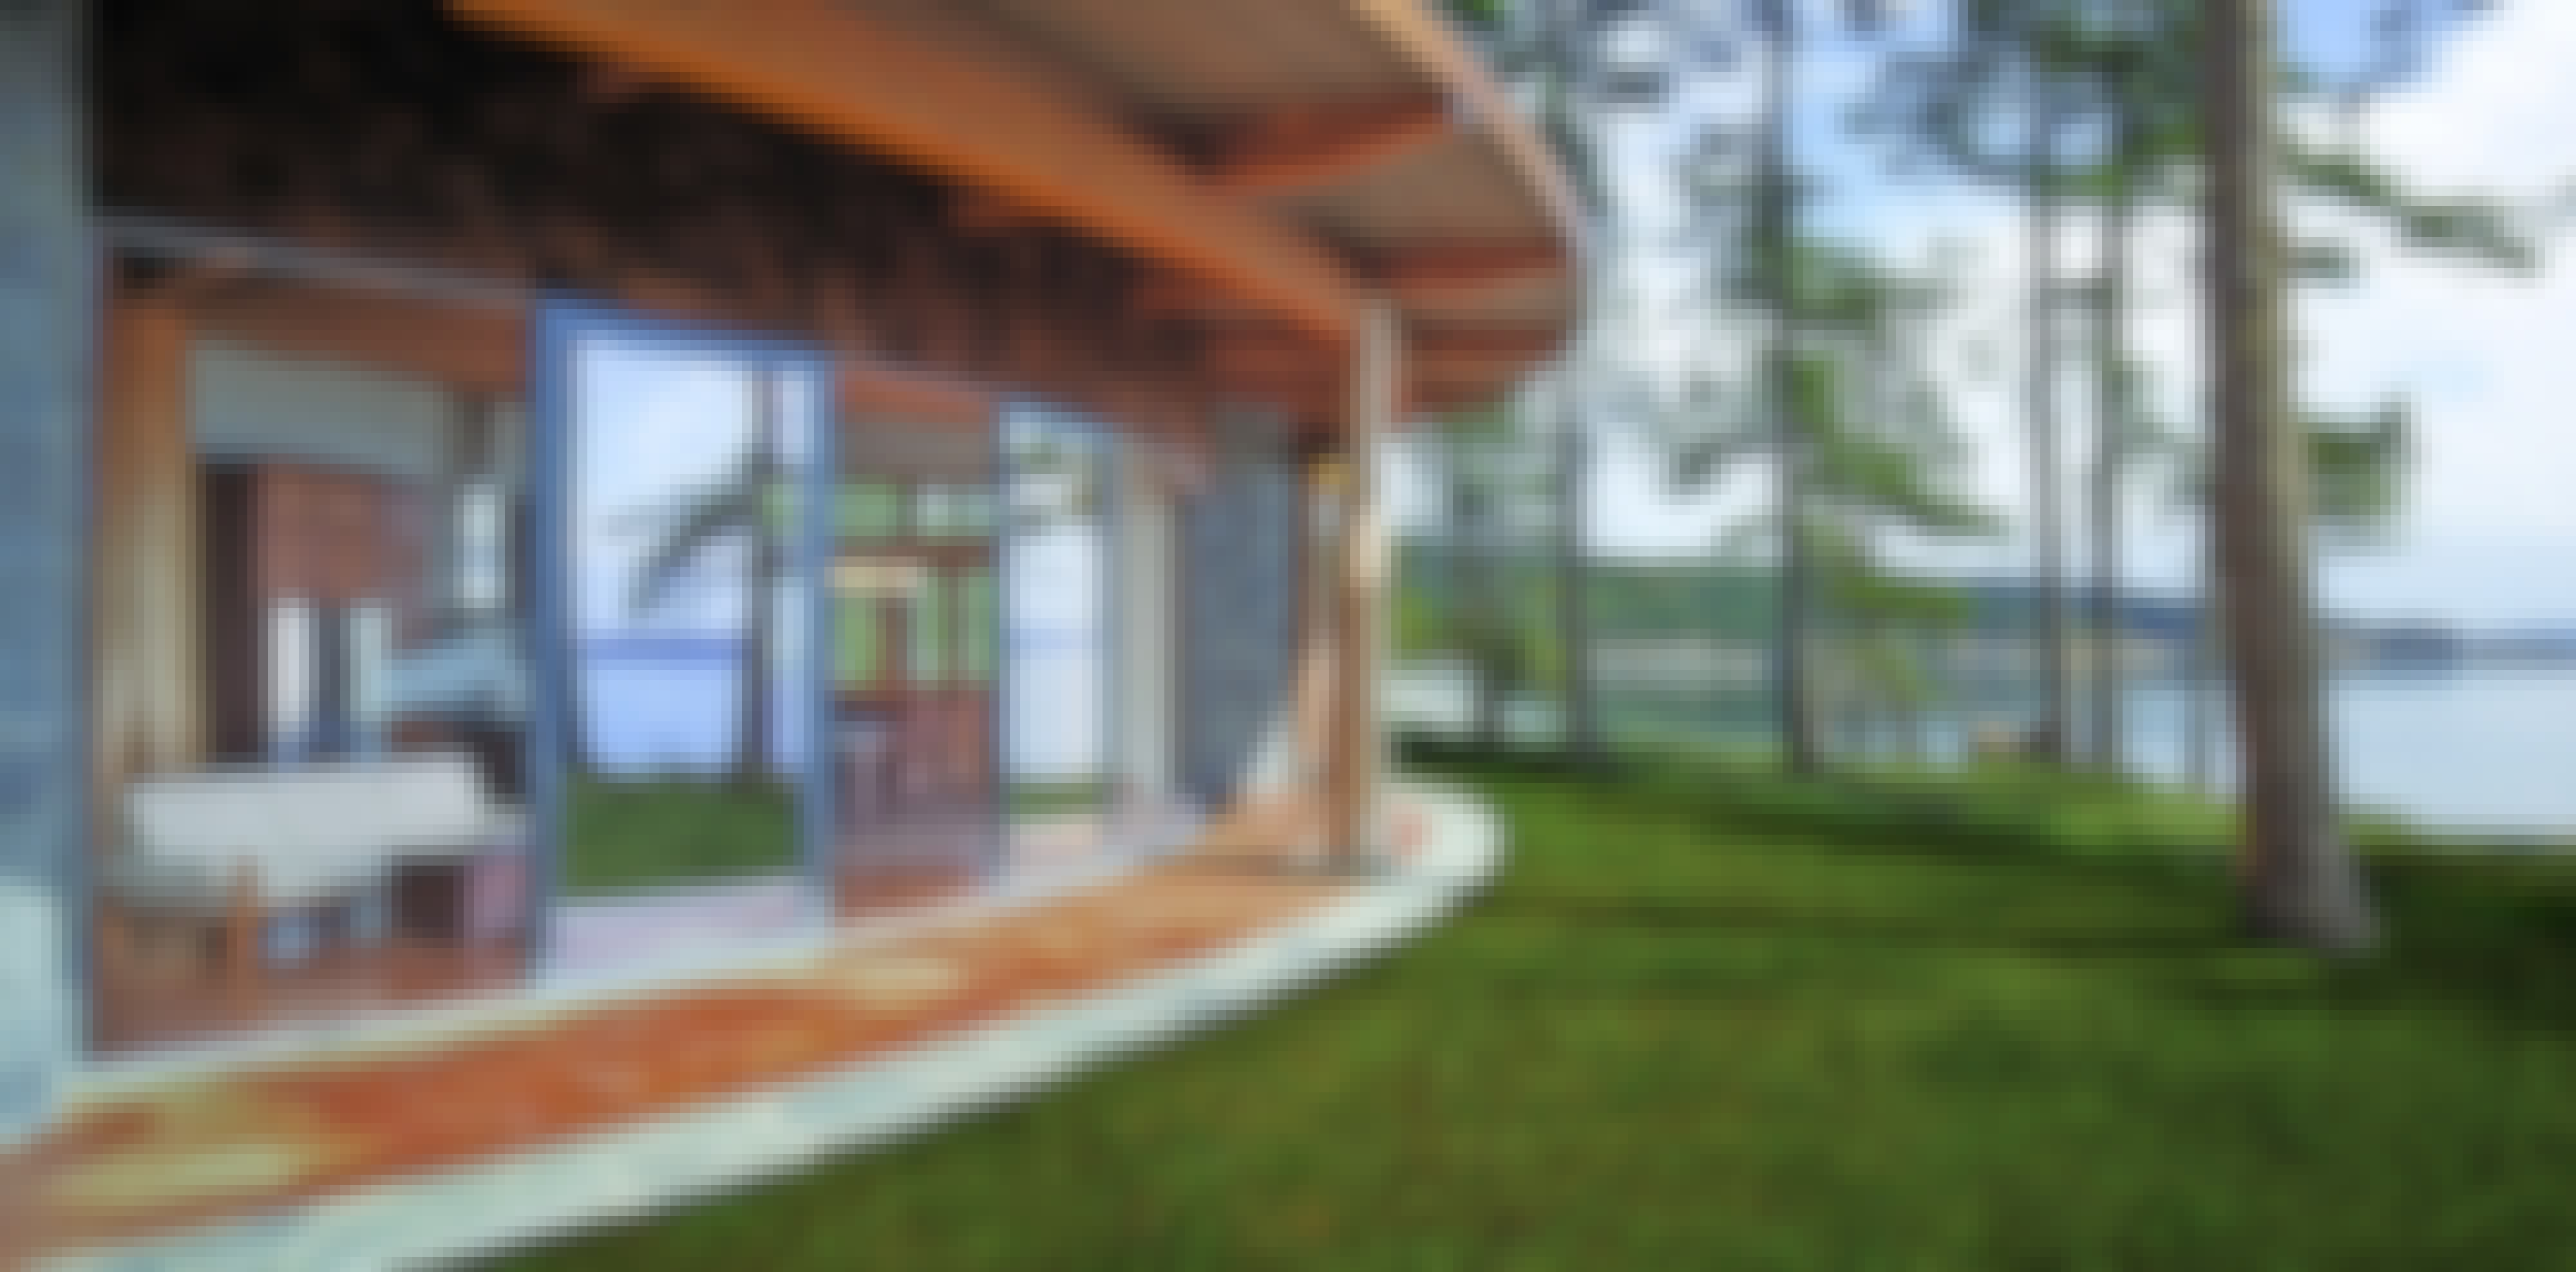 half-open-single-track-sliding-wall-with-trees-and-lake millennial home buying trends